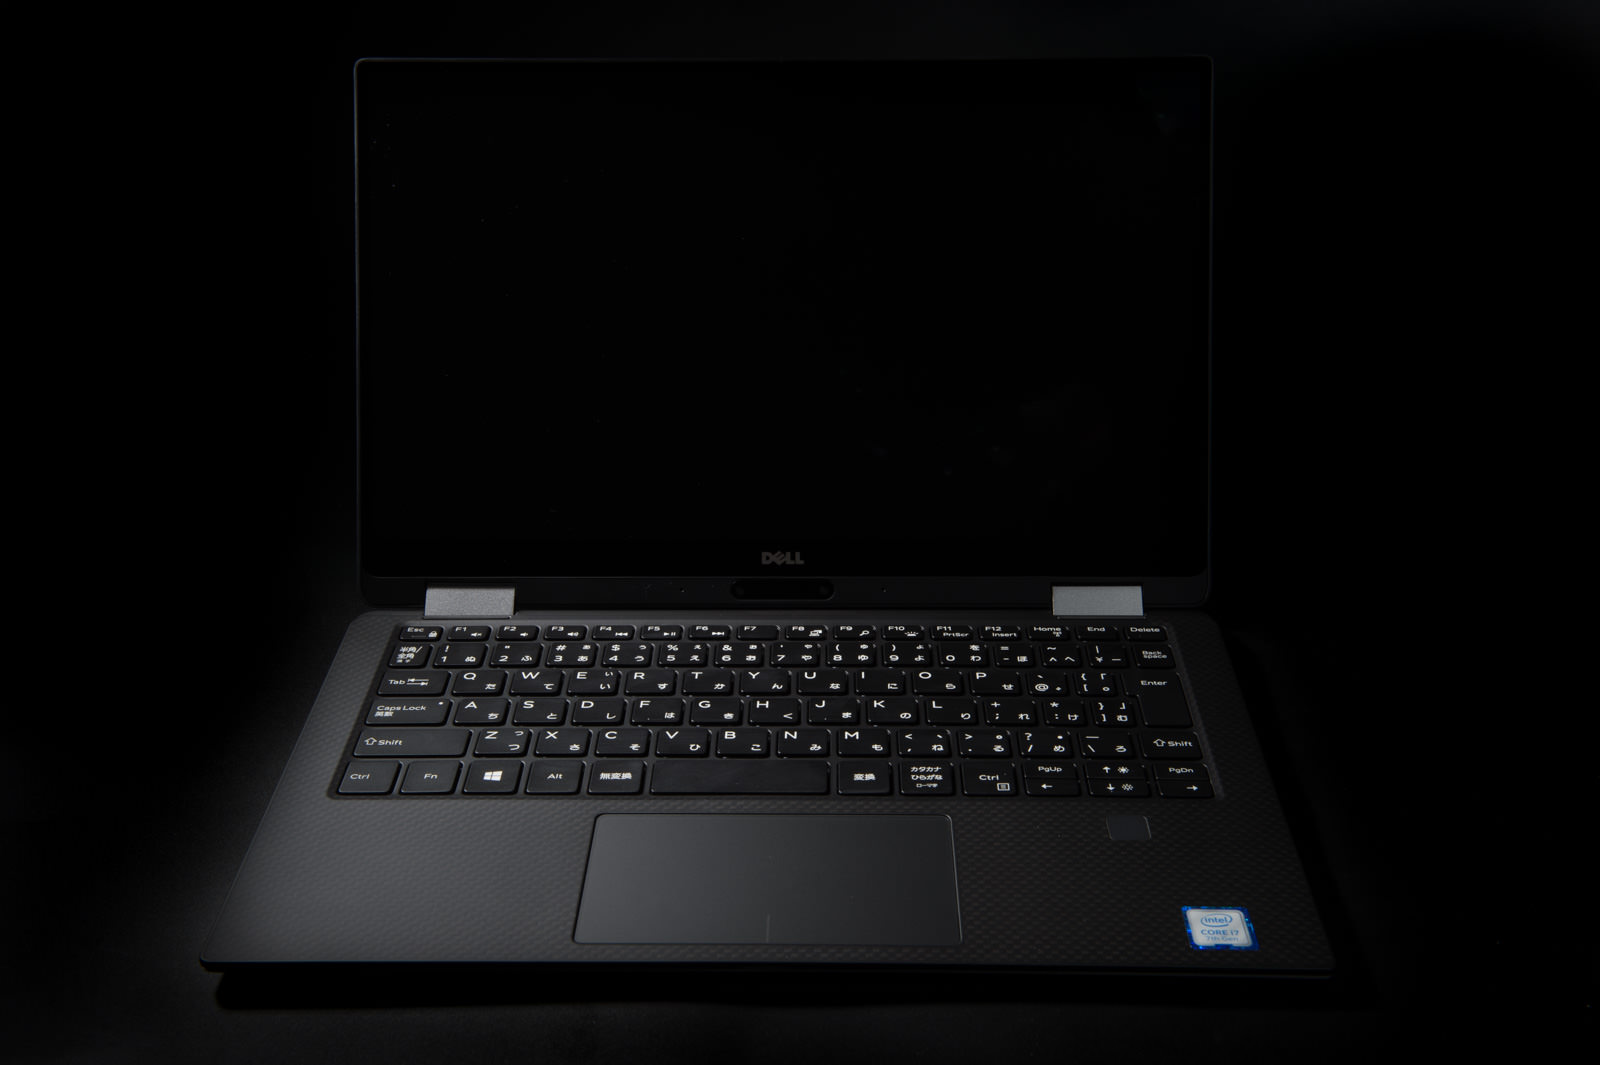 xps13-2-in-1-PCモード